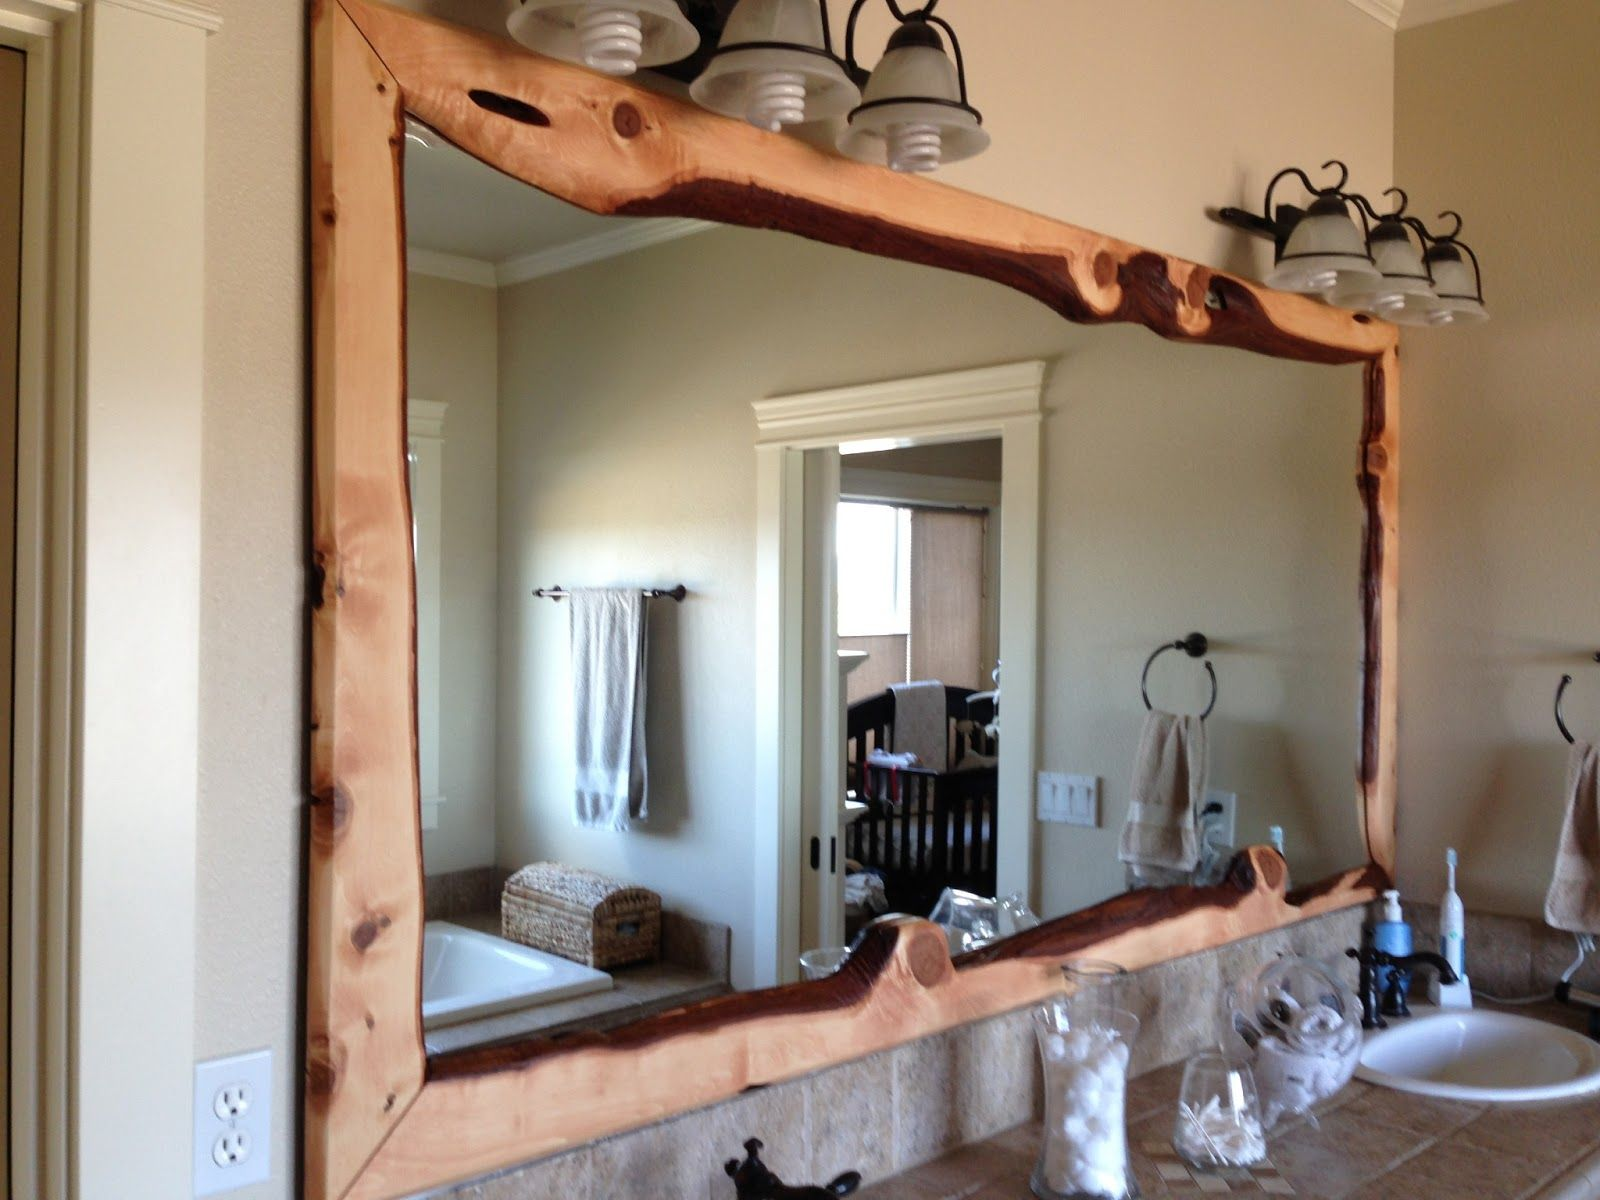 Bathroom interior rectangle wall mirror decor with rustic wooden frame and shaded wall lights framed mirrors for bathrooms